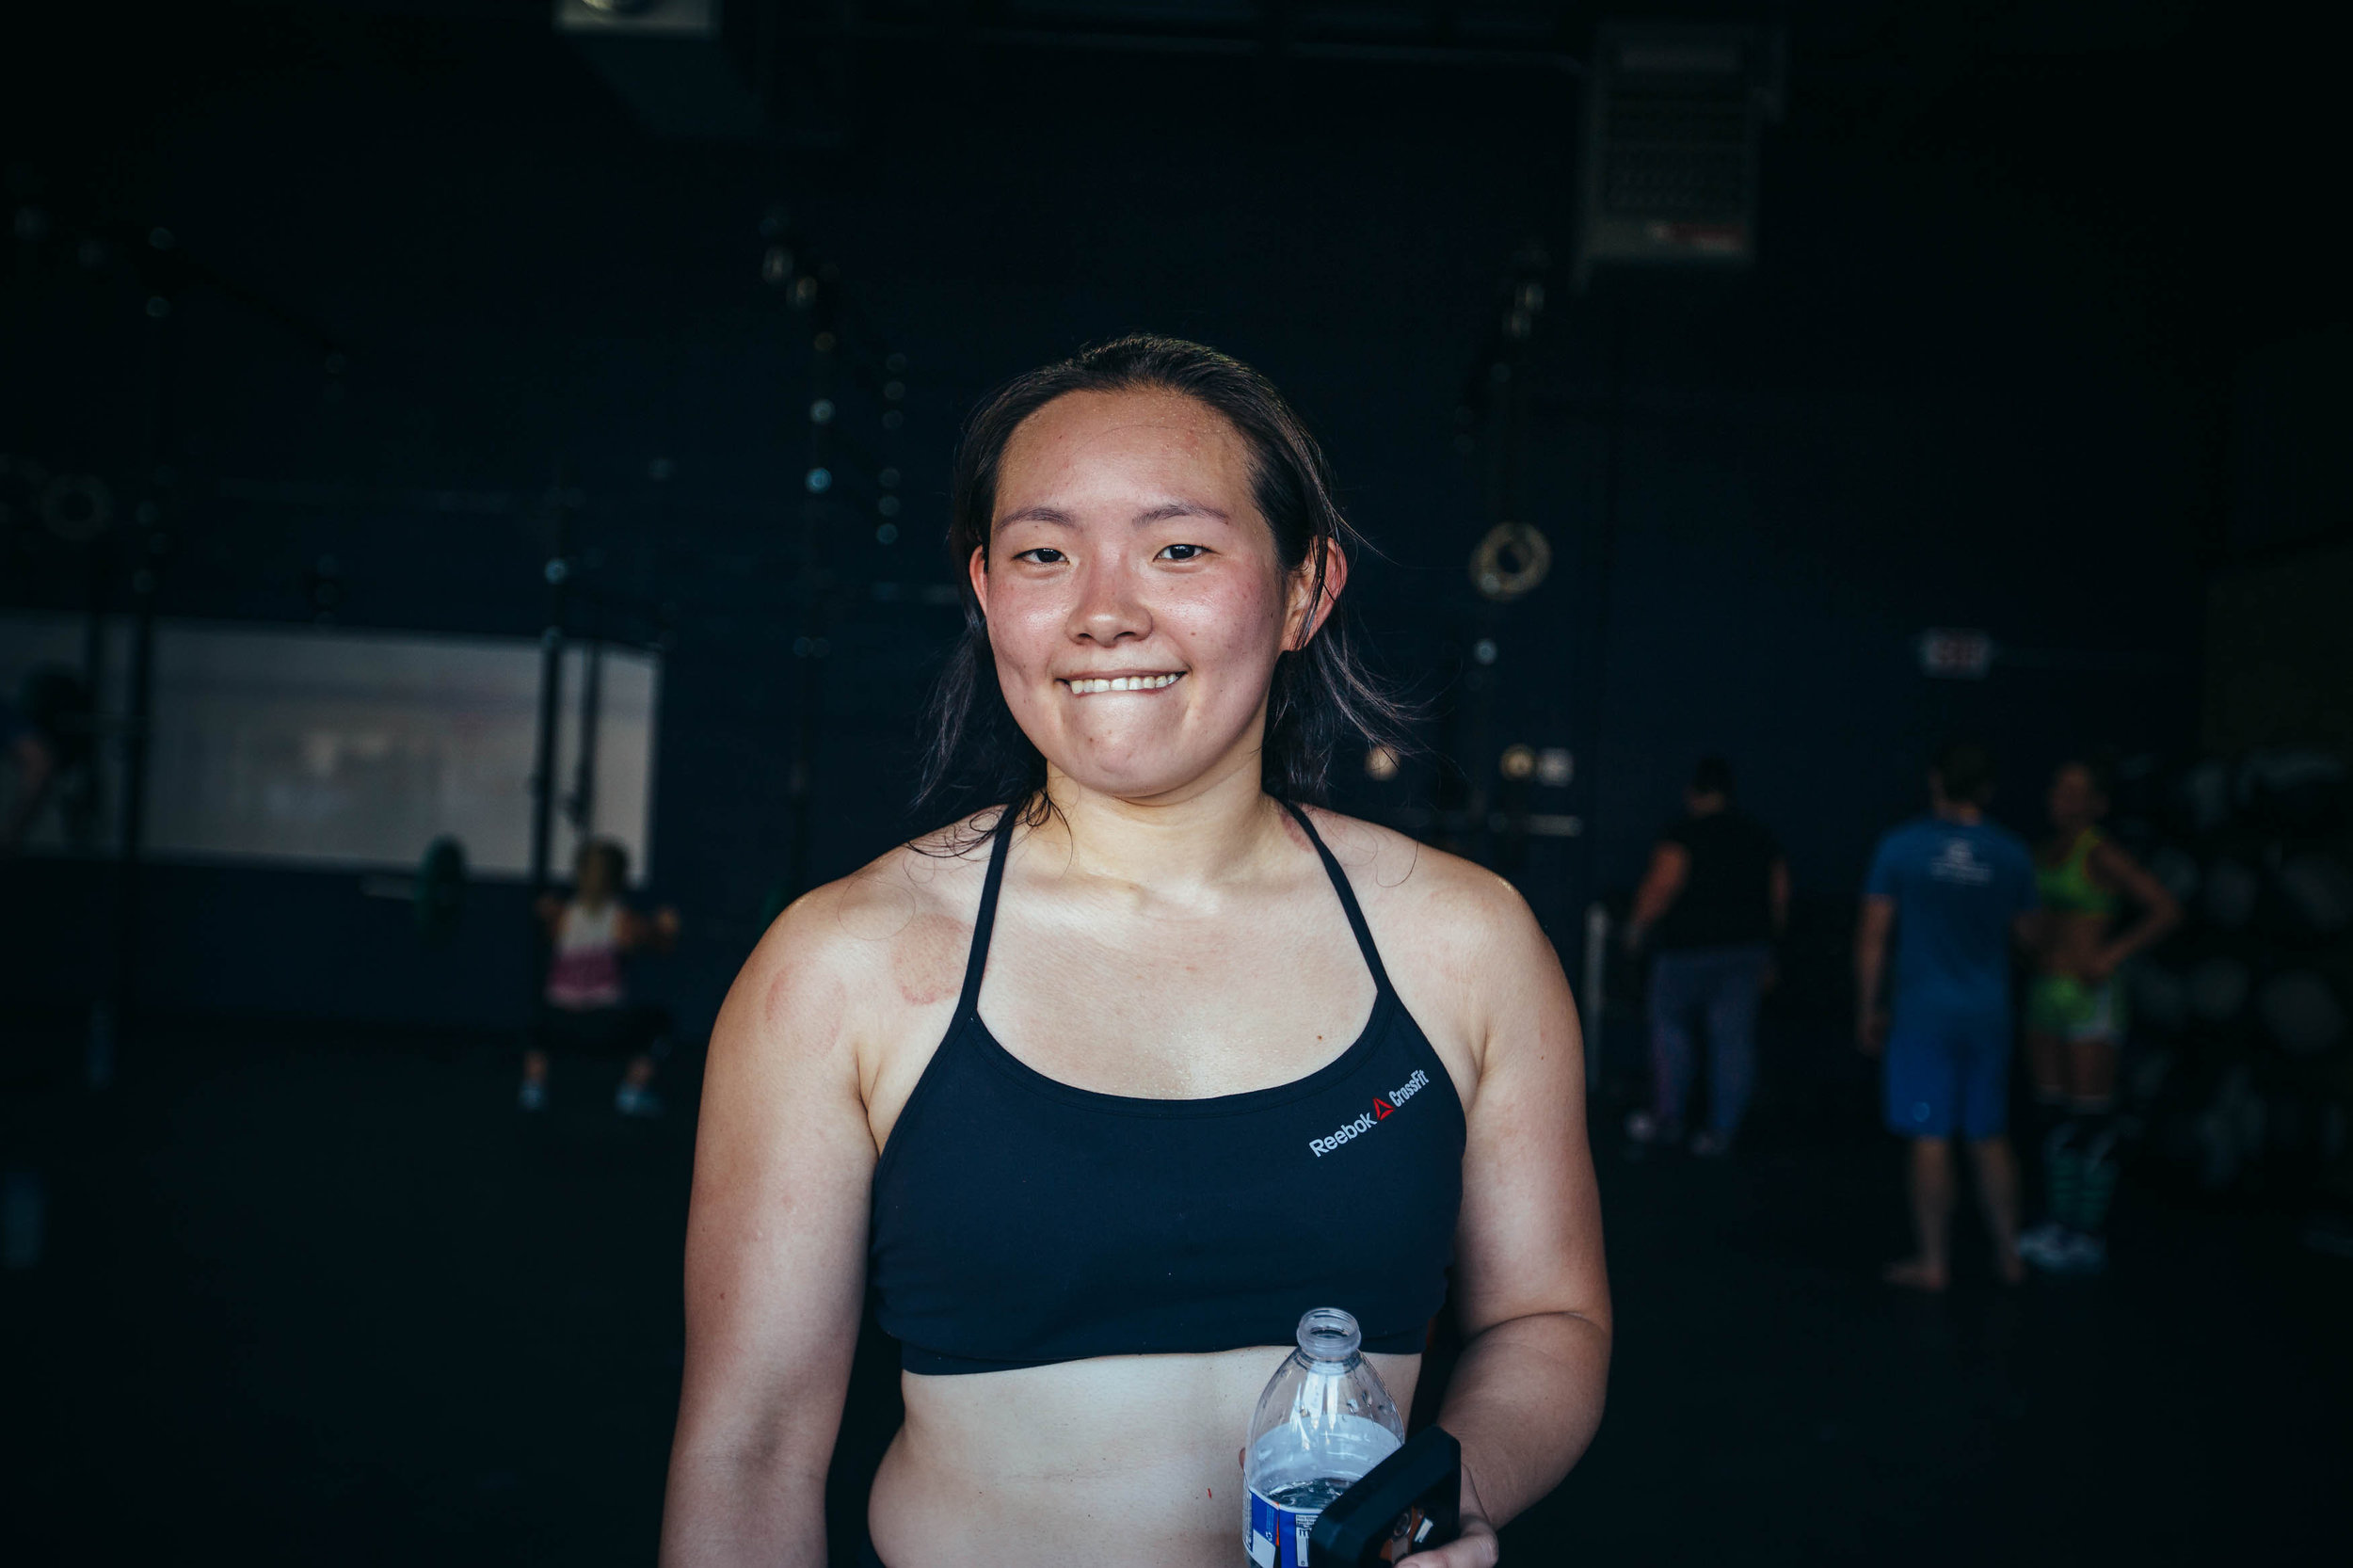 """What does Sam tell herself when she's pushing through a workout? """"One rep at a time. You...put work in and get better each time."""""""